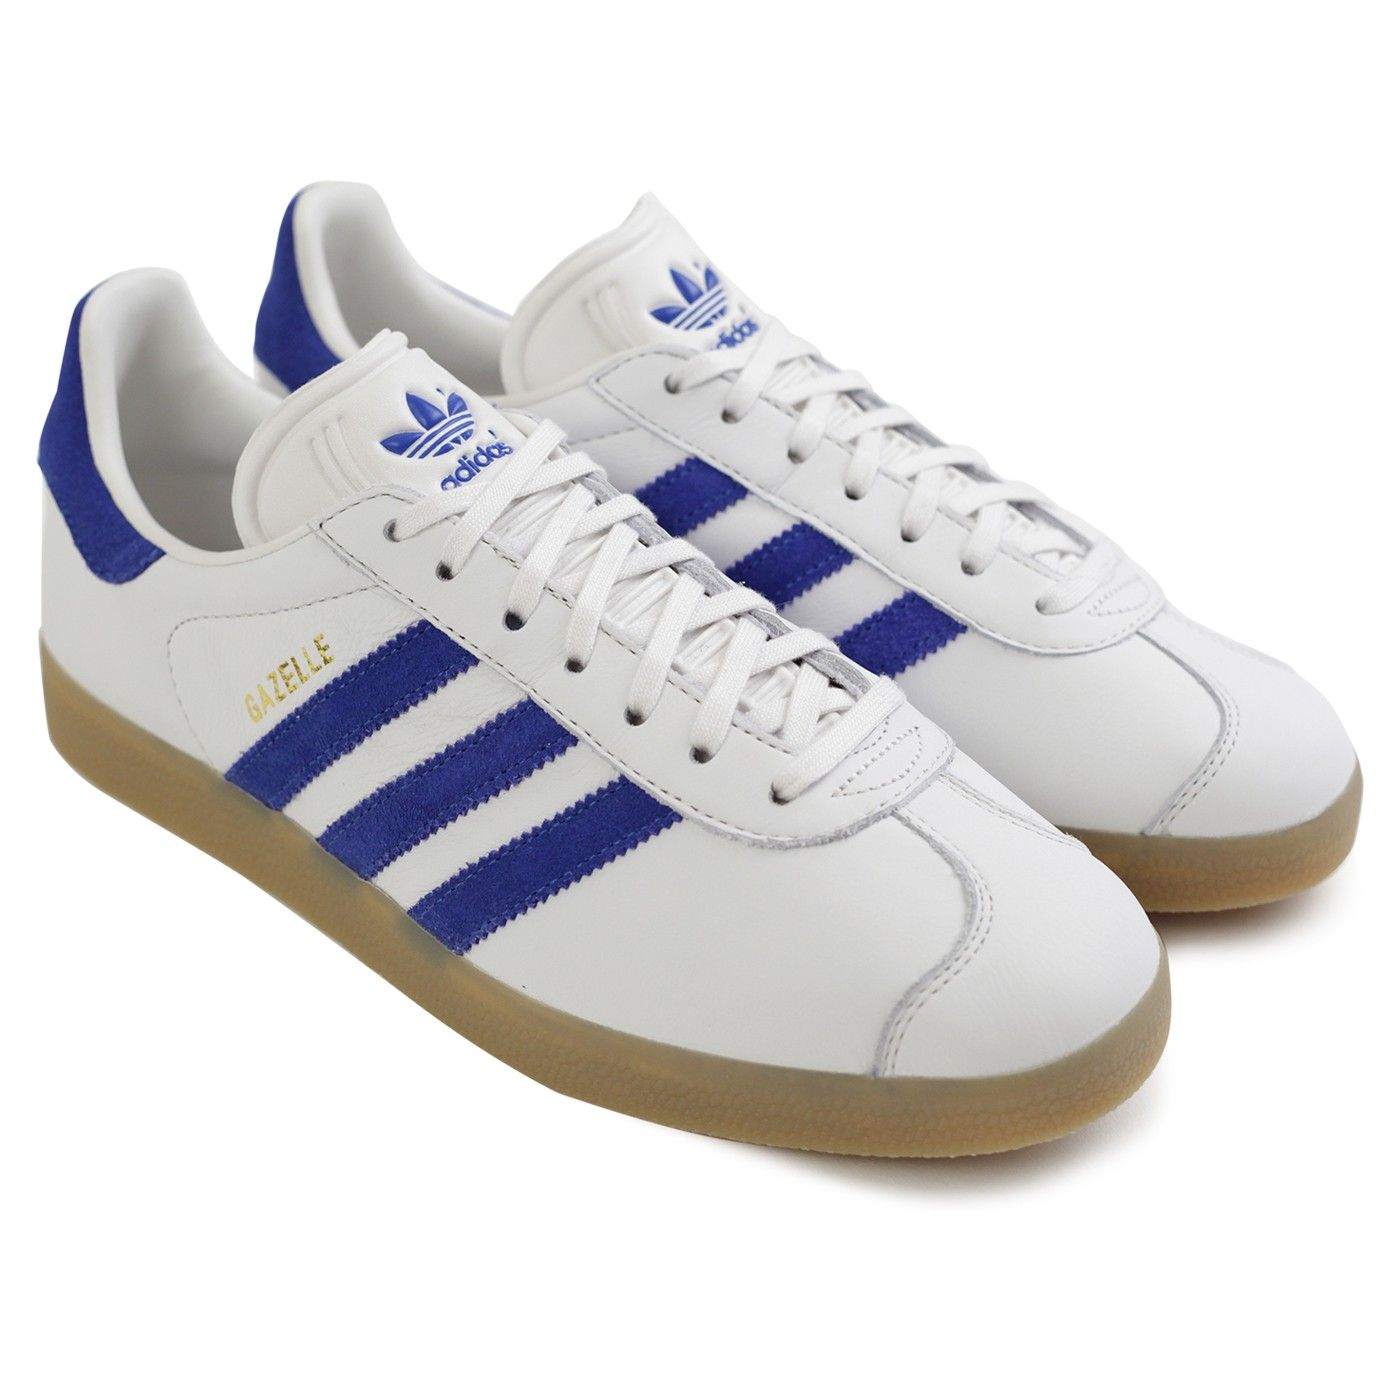 Gazelle Shoes in Vintage White / Bold Blue / Gum by Adidas Originals